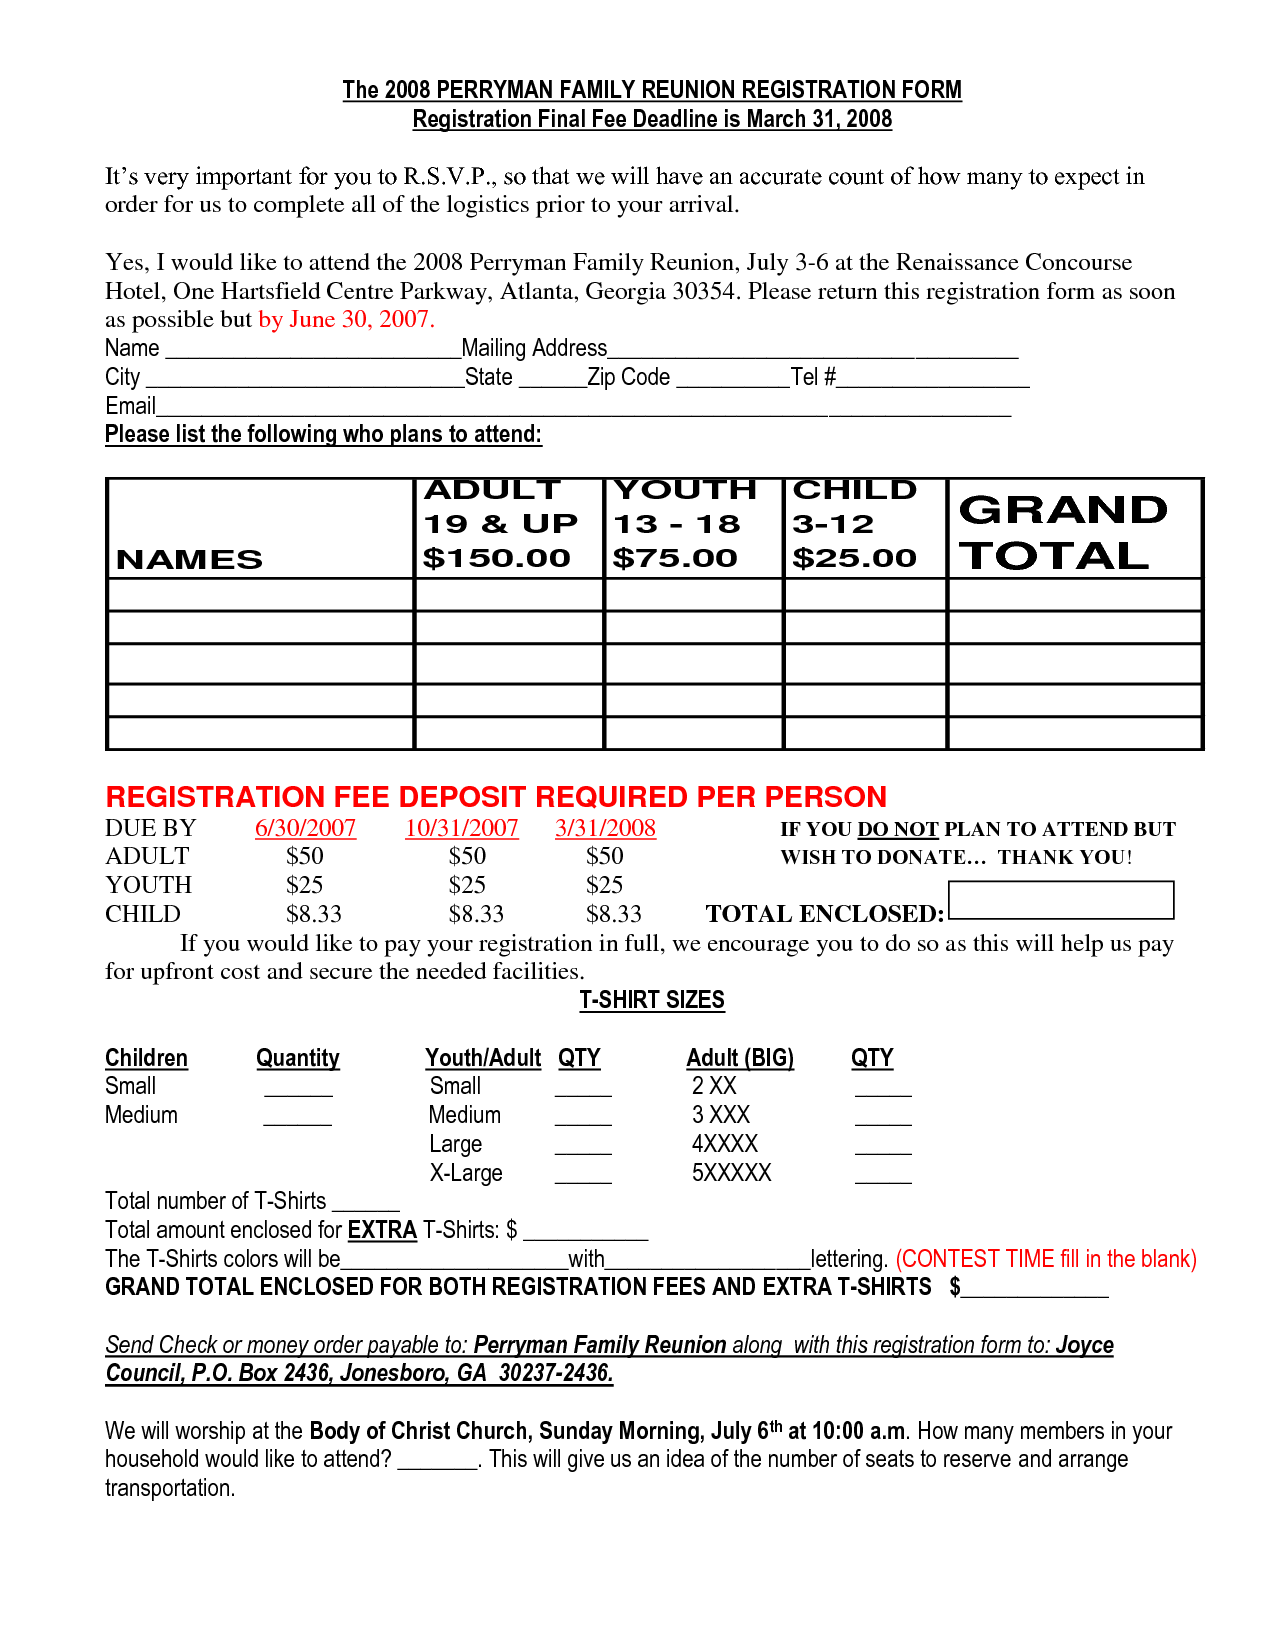 Family Reunion Registration Packet